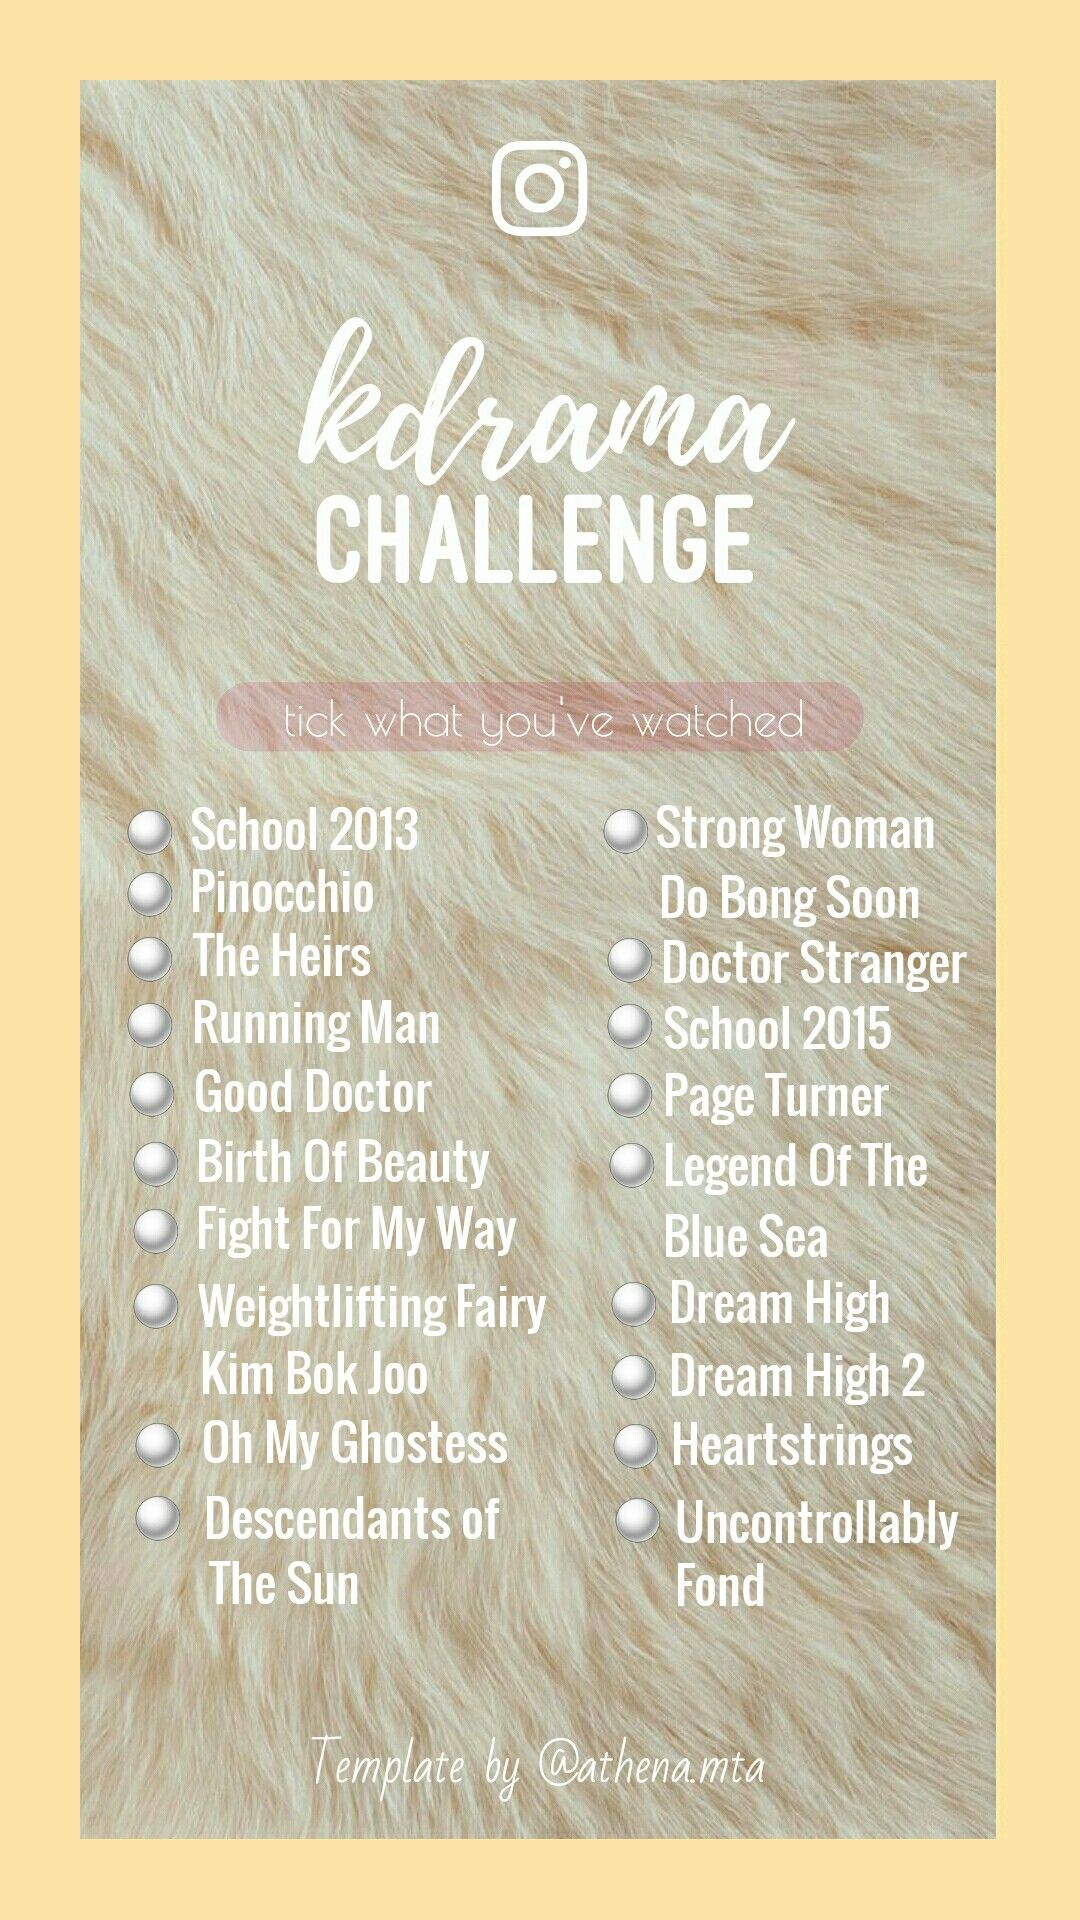 Kdrama Challenge Template Story Template Storytemplate